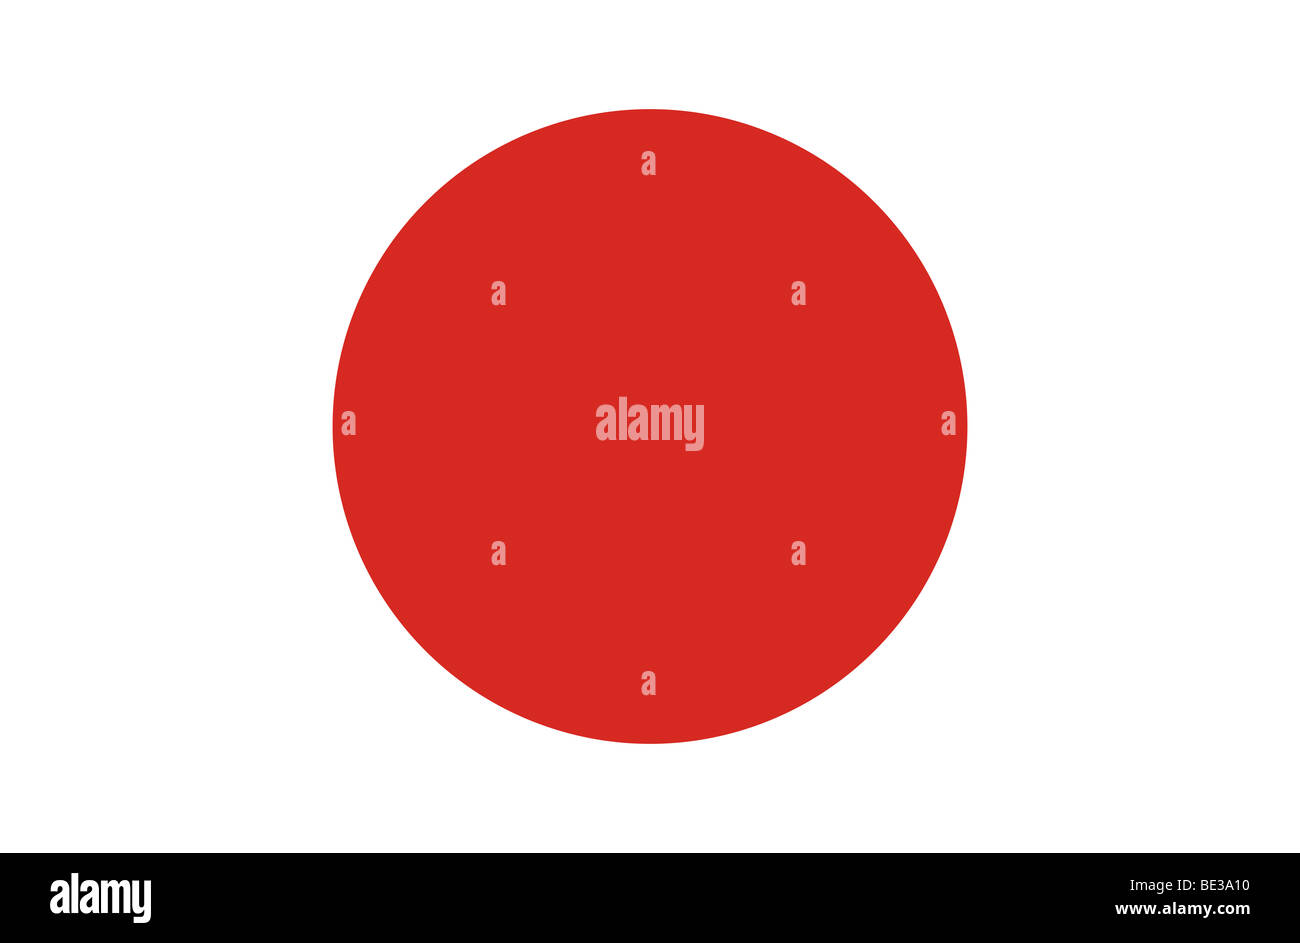 Japanese flag illustration Stock Photo